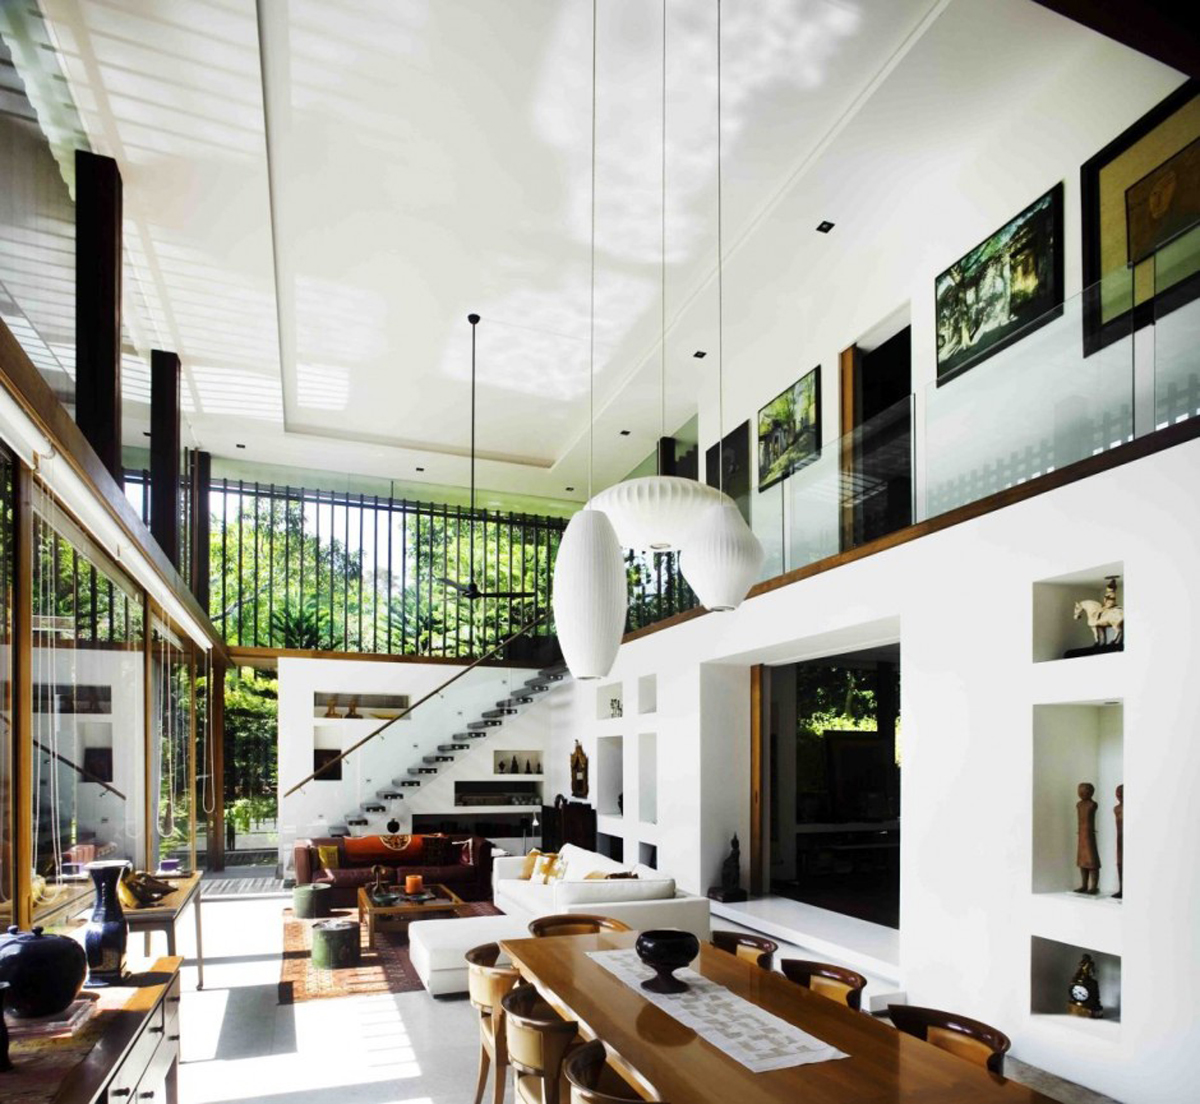 If You Want To Have The Dream House Design That Has Wonderful Garden Views This Modern In Singapore Can Be Used As Your Inspiration